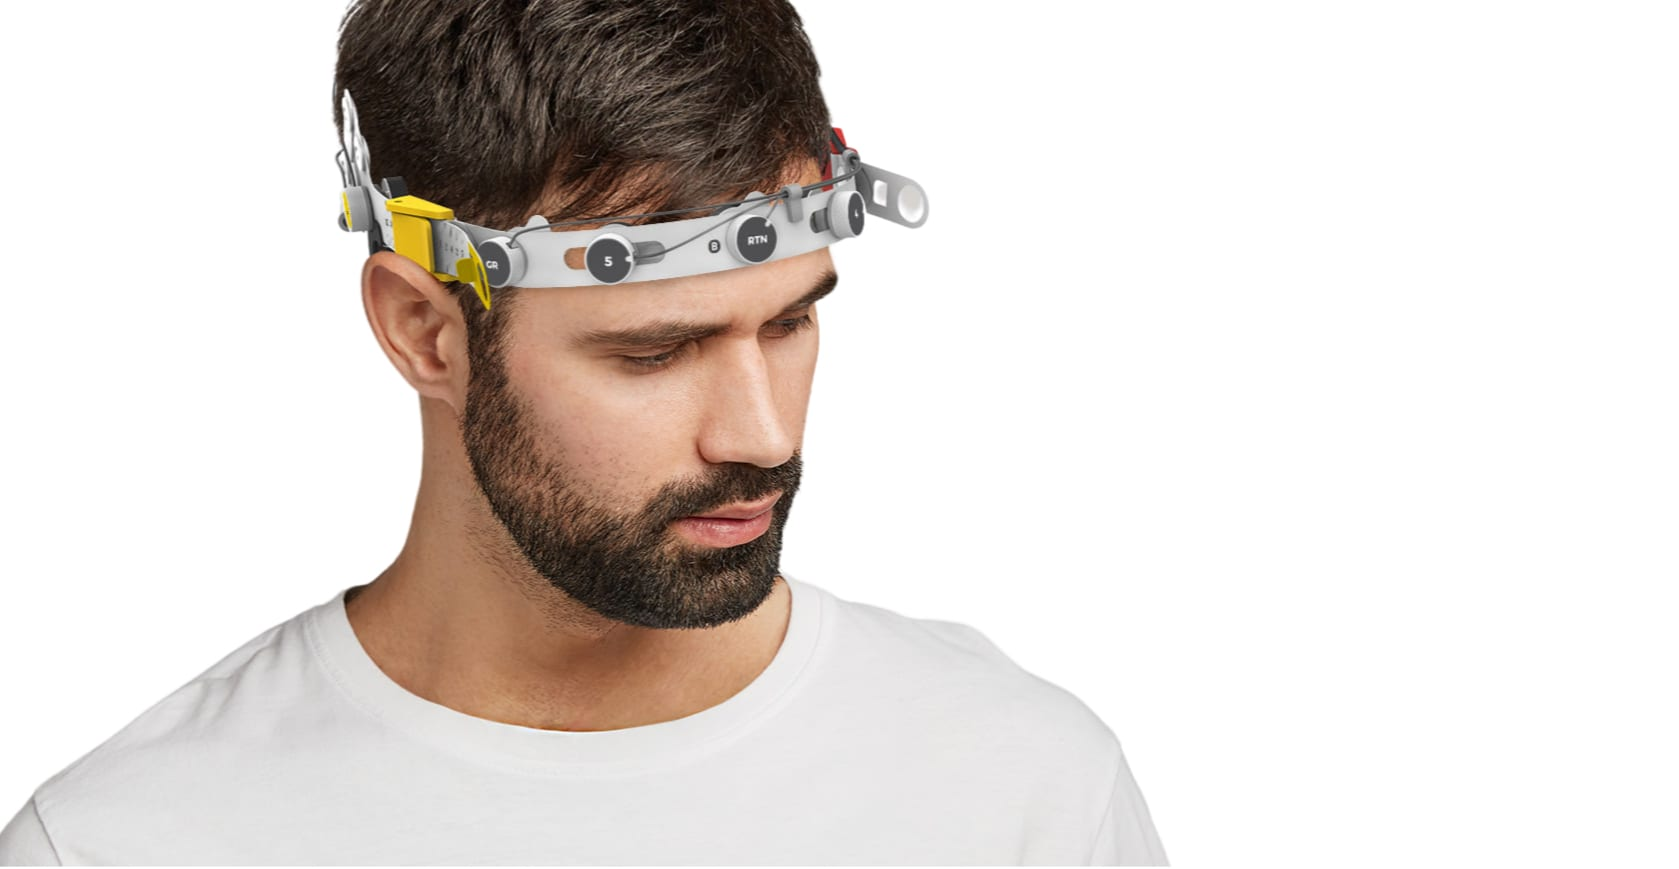 This headset measures brainwaves to tell if you're high or not - Cognalyzer headset Zentrela